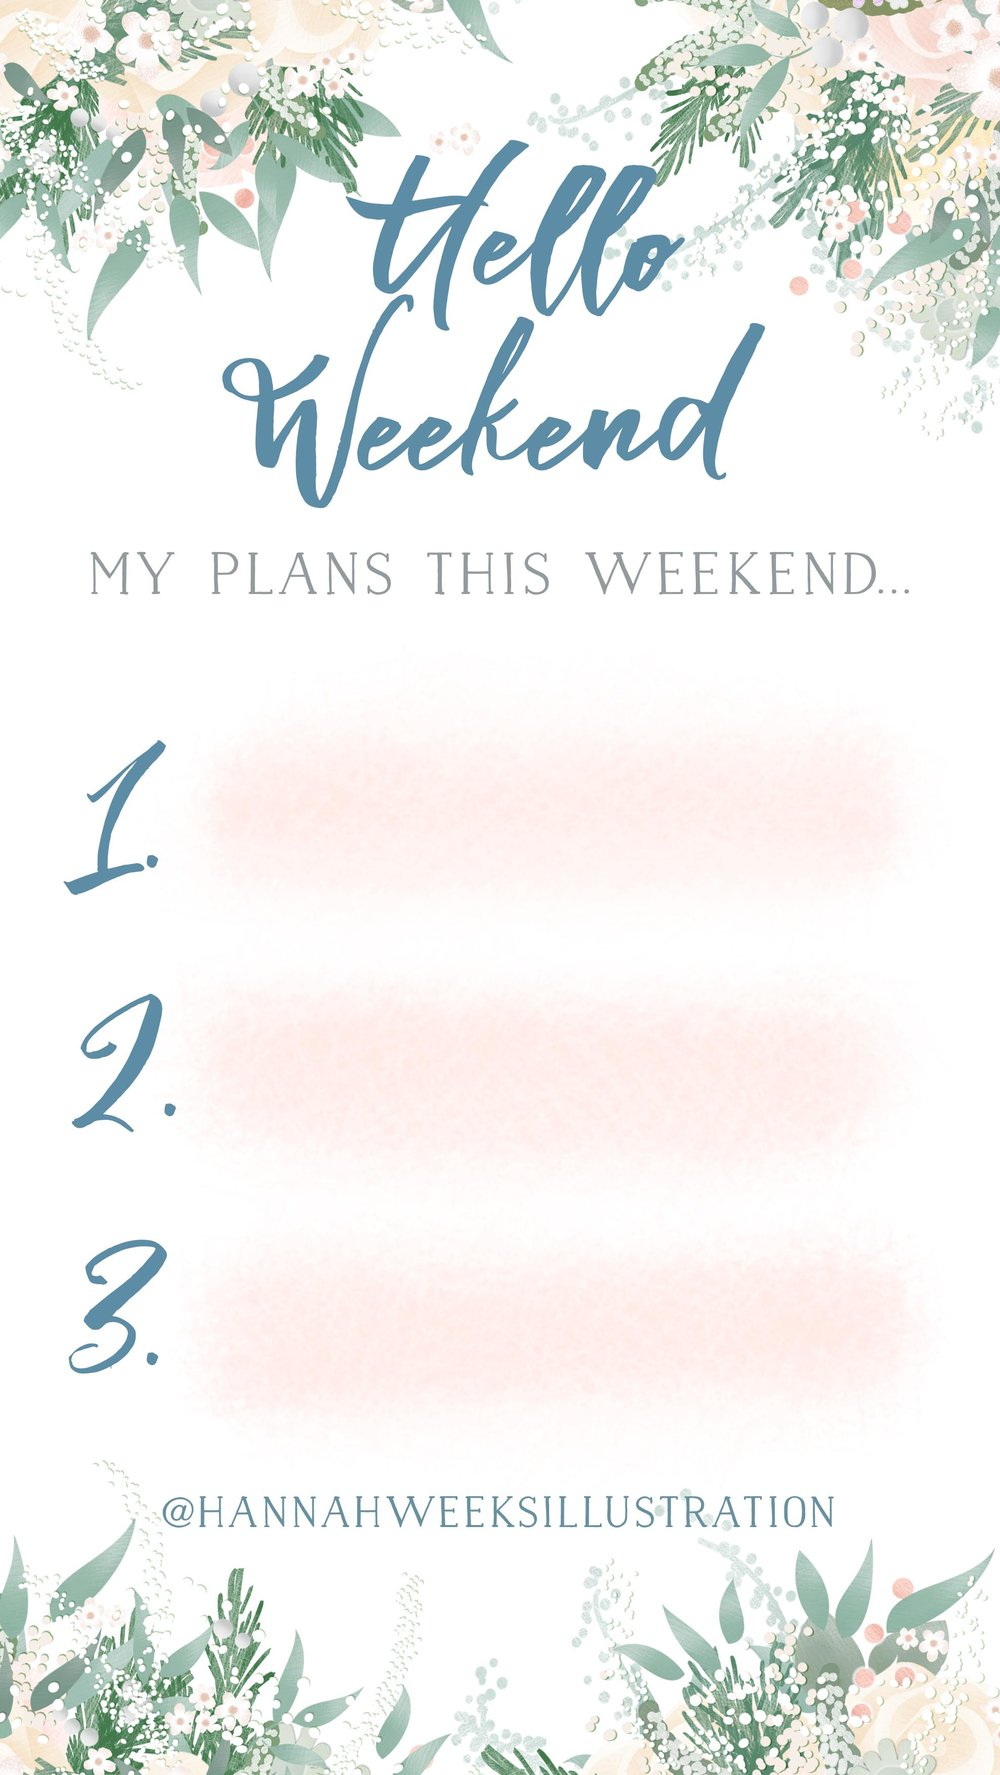 Hannah Weeks Illustration - Hello weekend.jpg